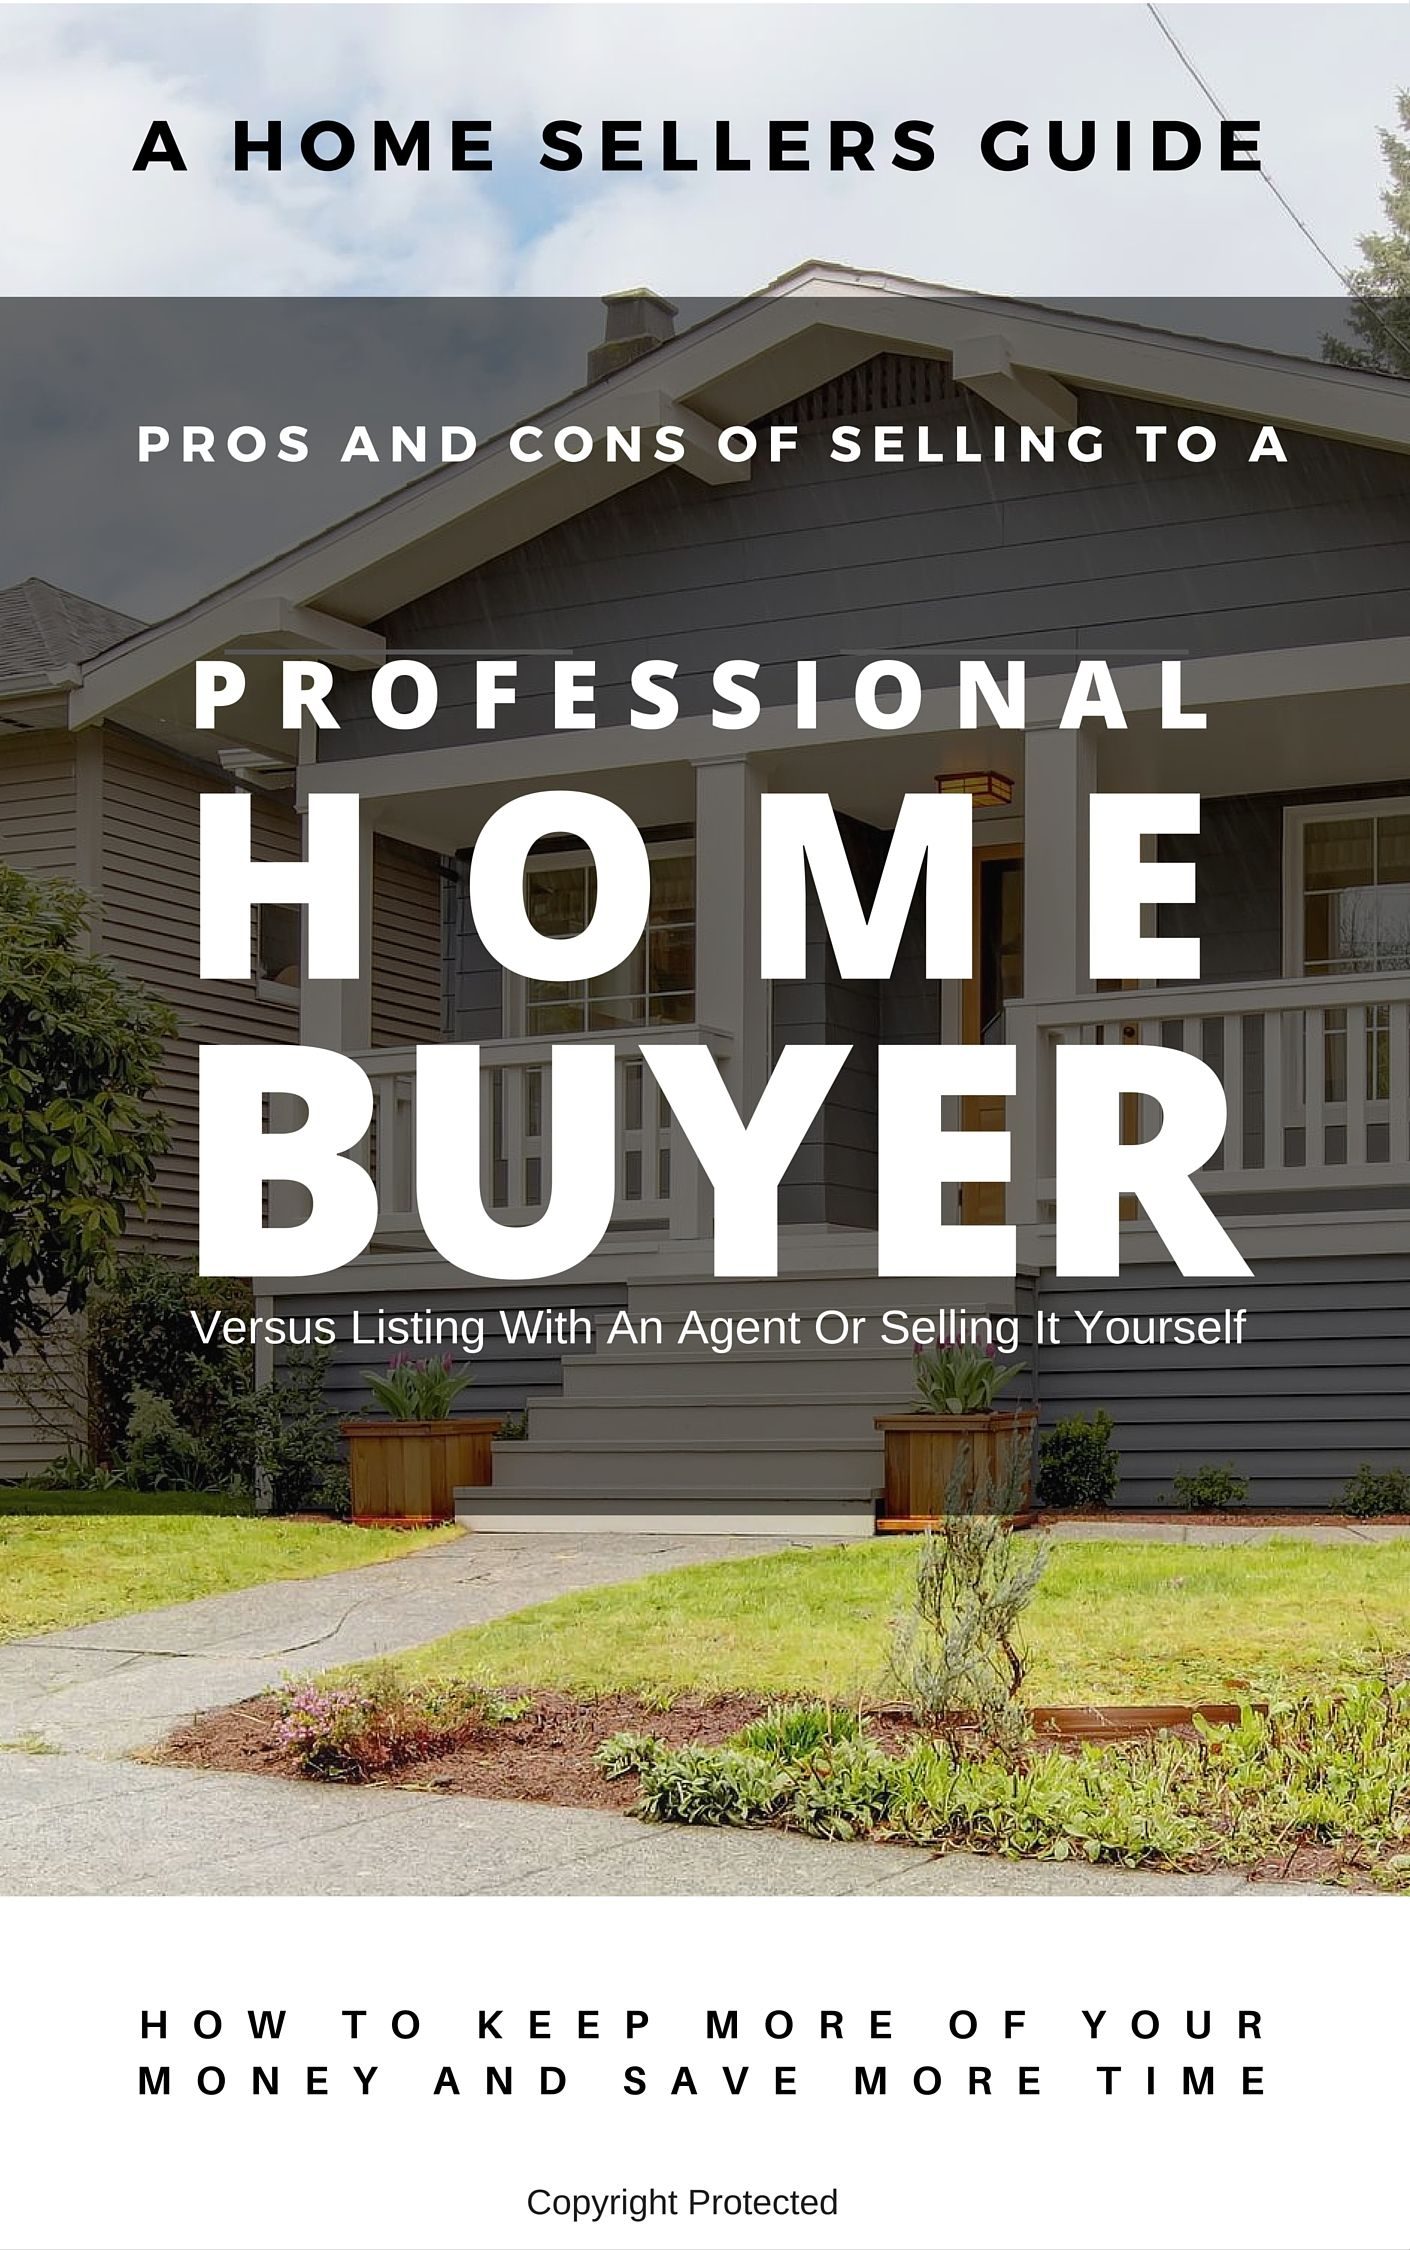 FREE Guide Download, Home Buyer